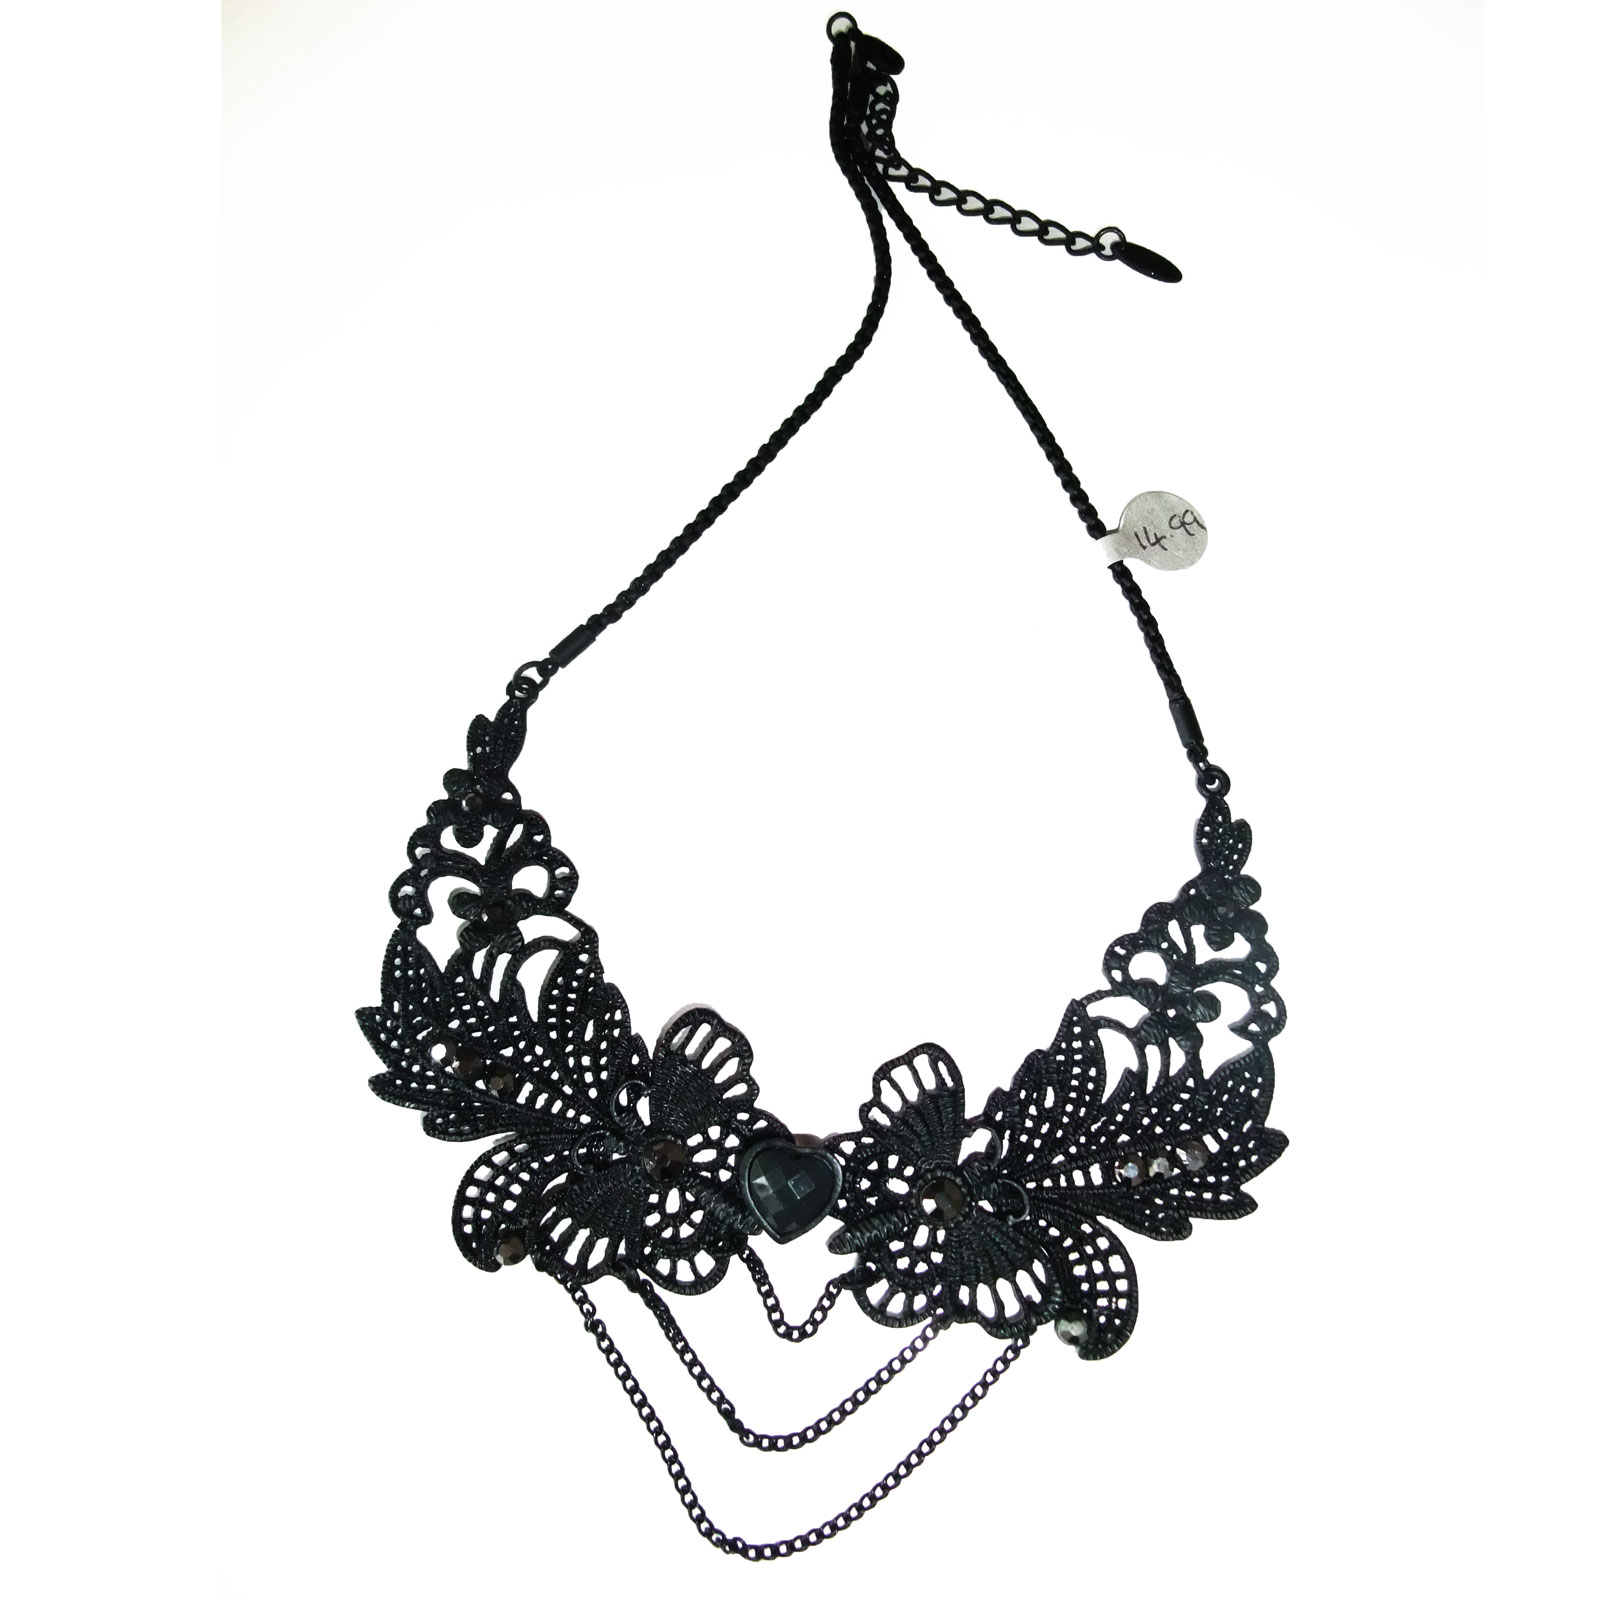 Gothic Necklace In Black Metal Lace Effect With Pendant Chains image